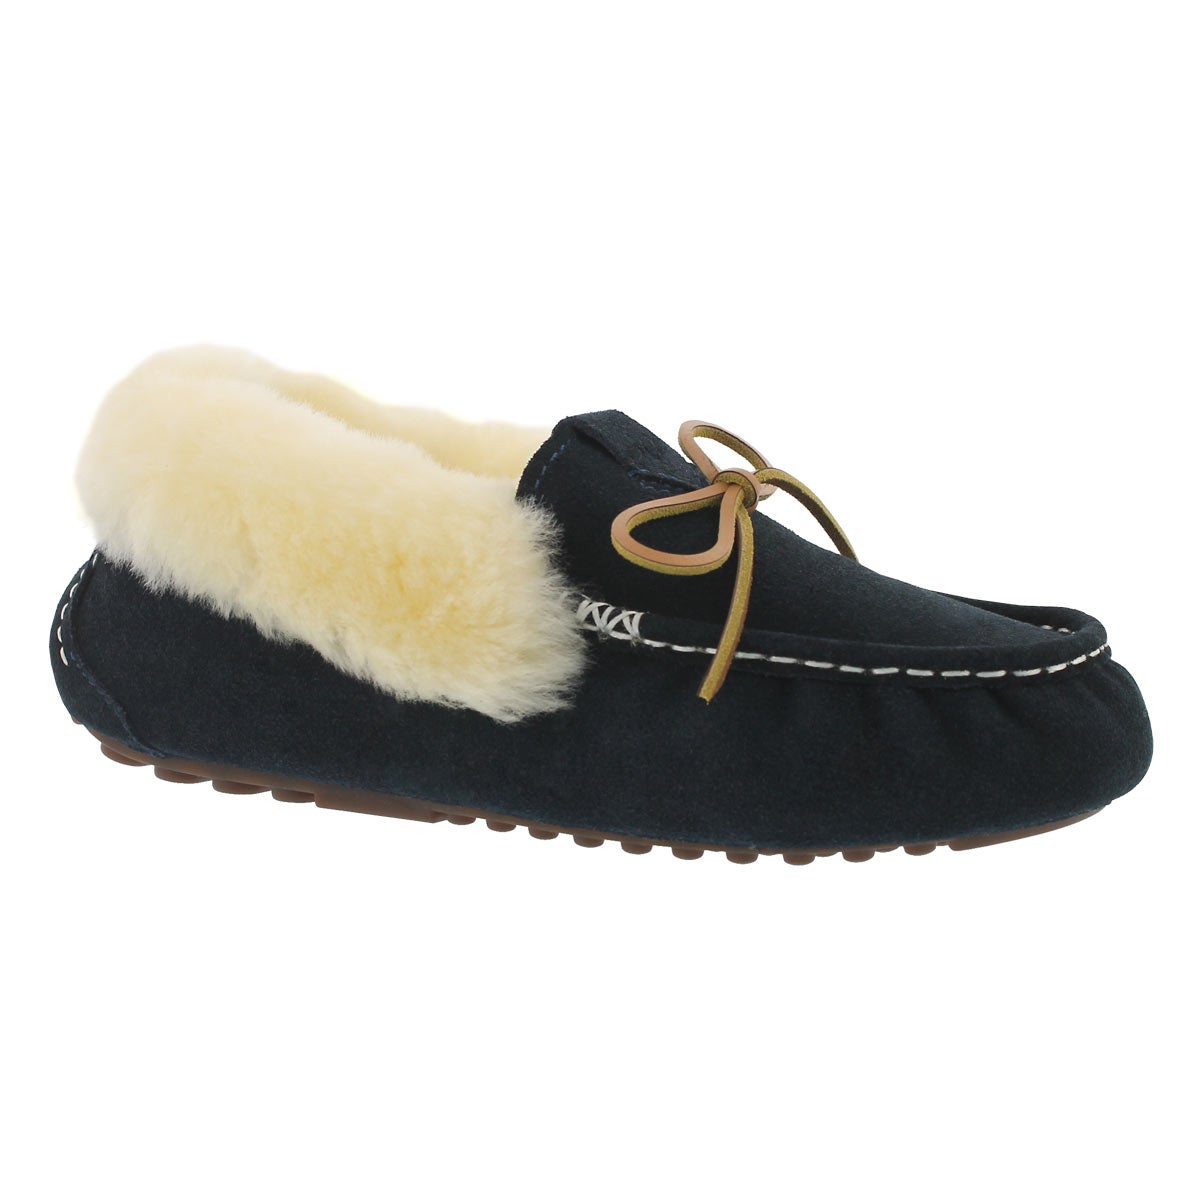 Women's PATTY navy shearling lined suede moccasins